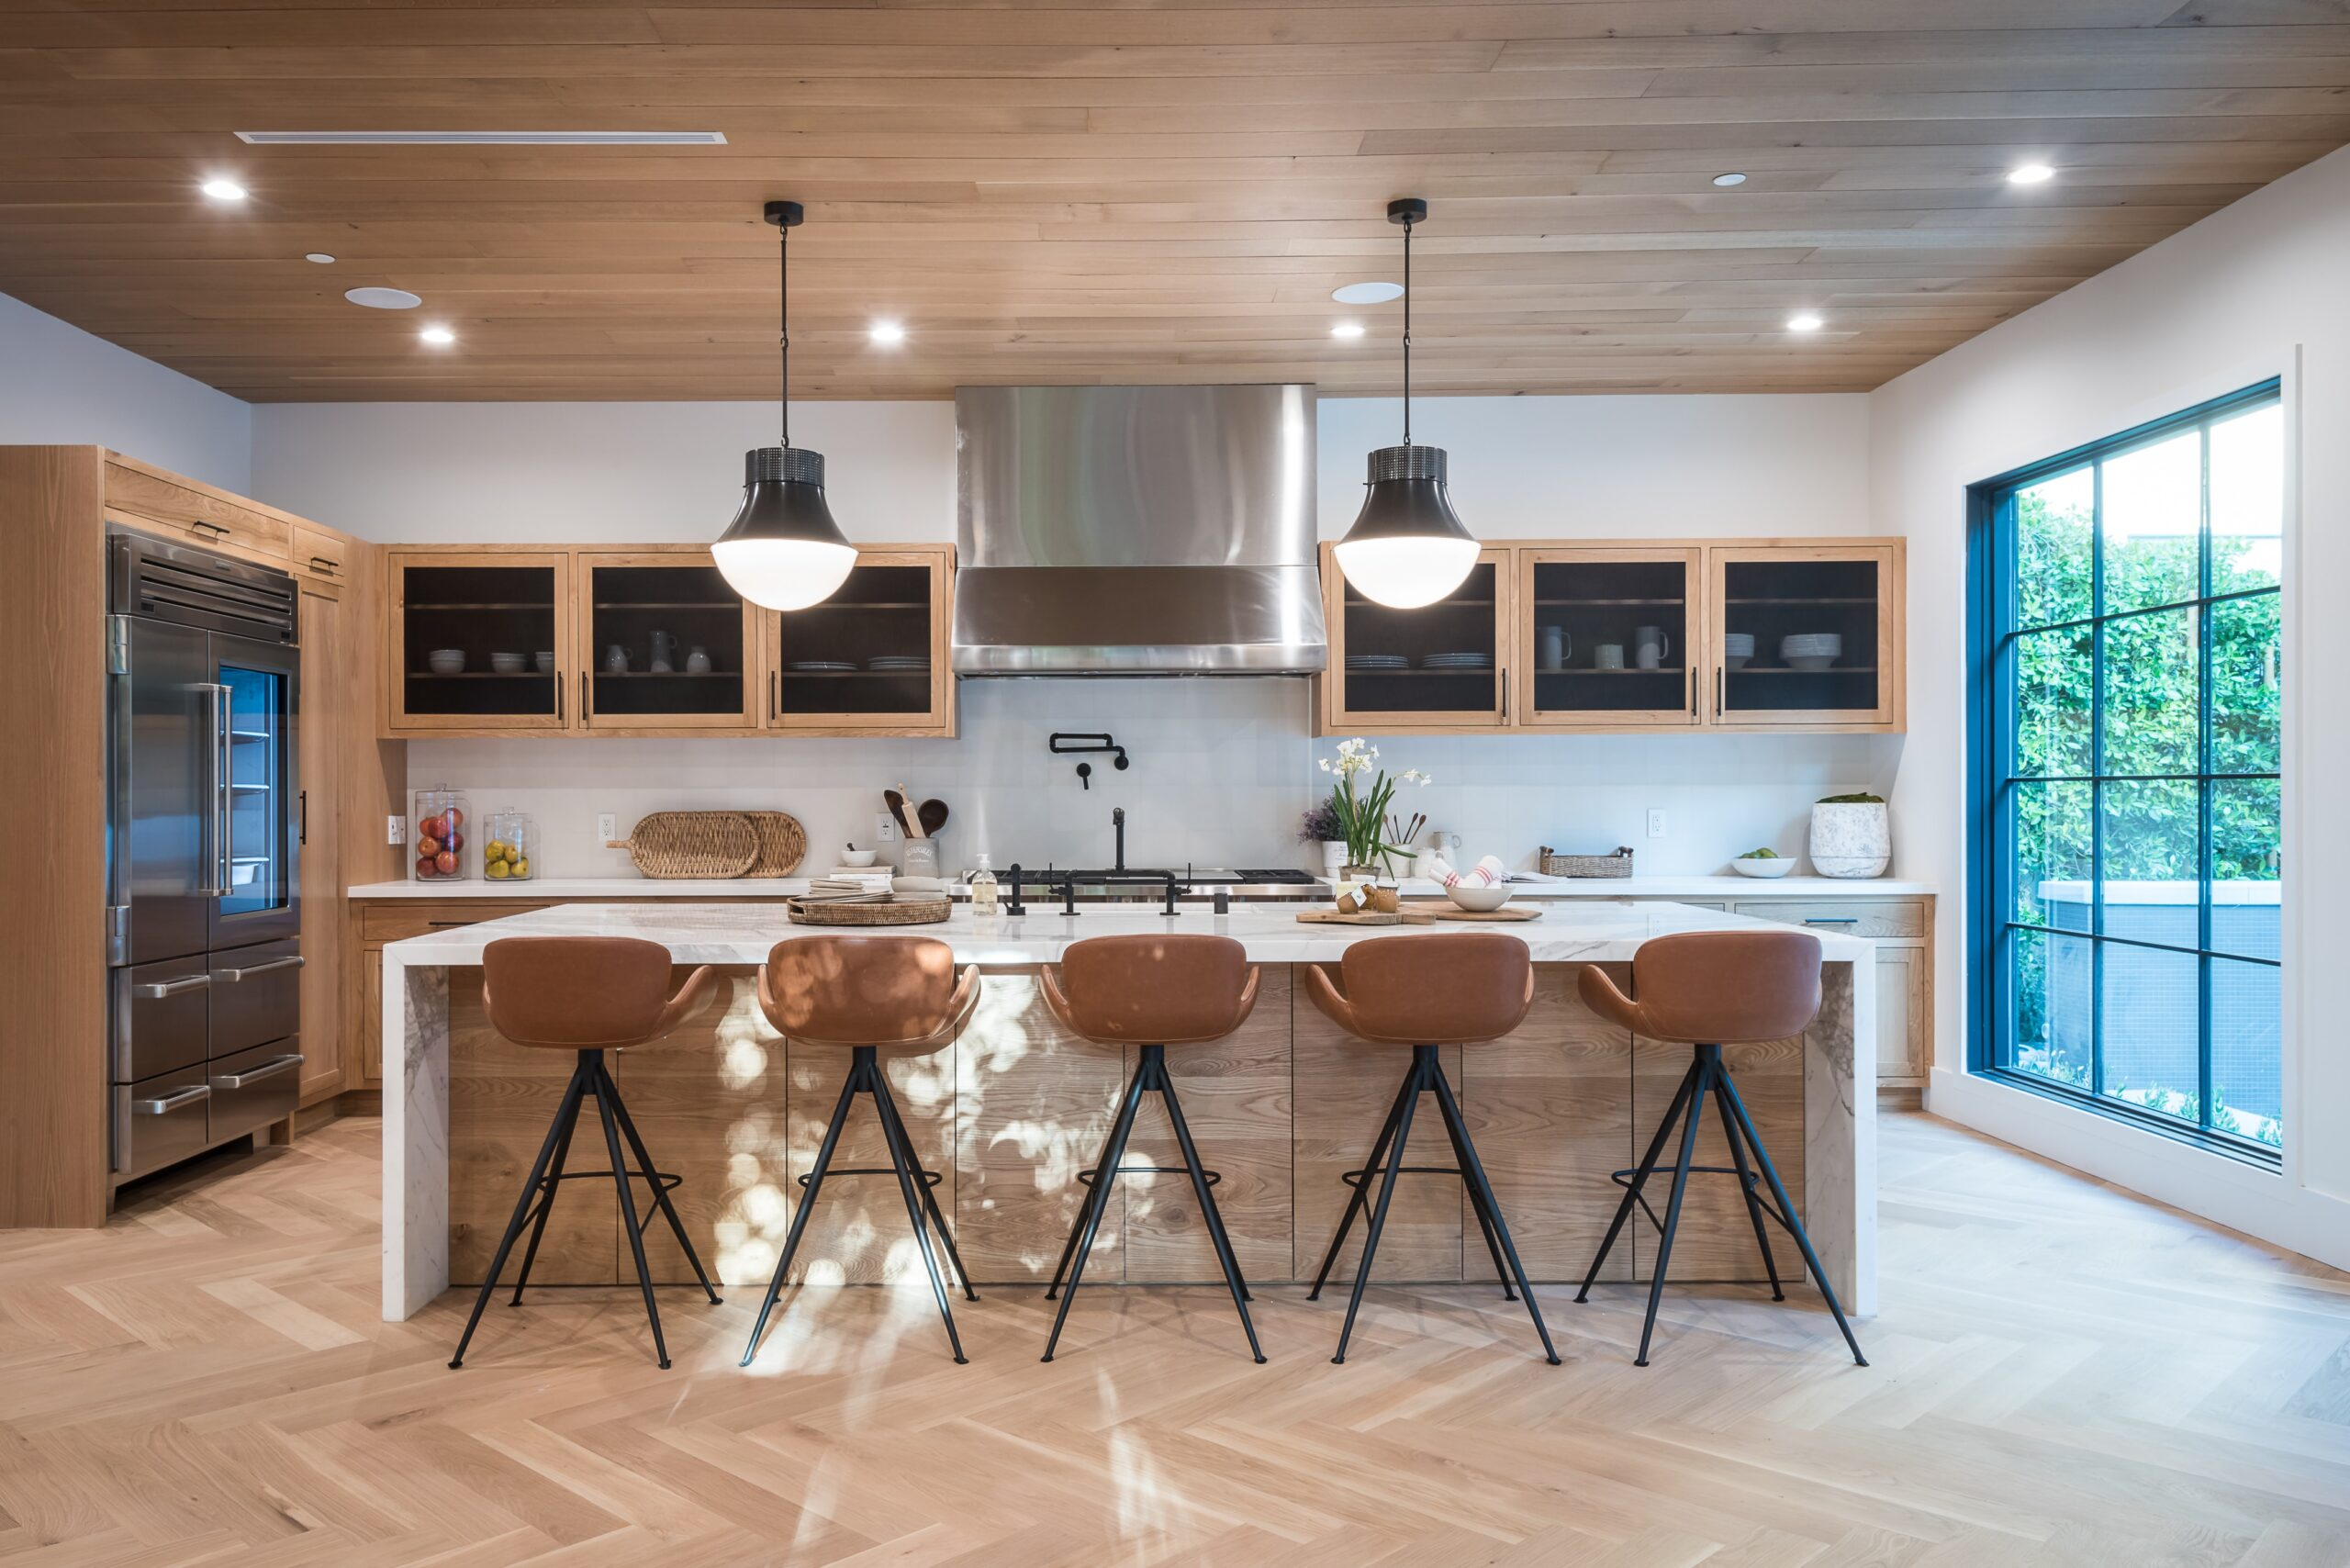 Make Your Kitchen More Luxurious With These Ideas